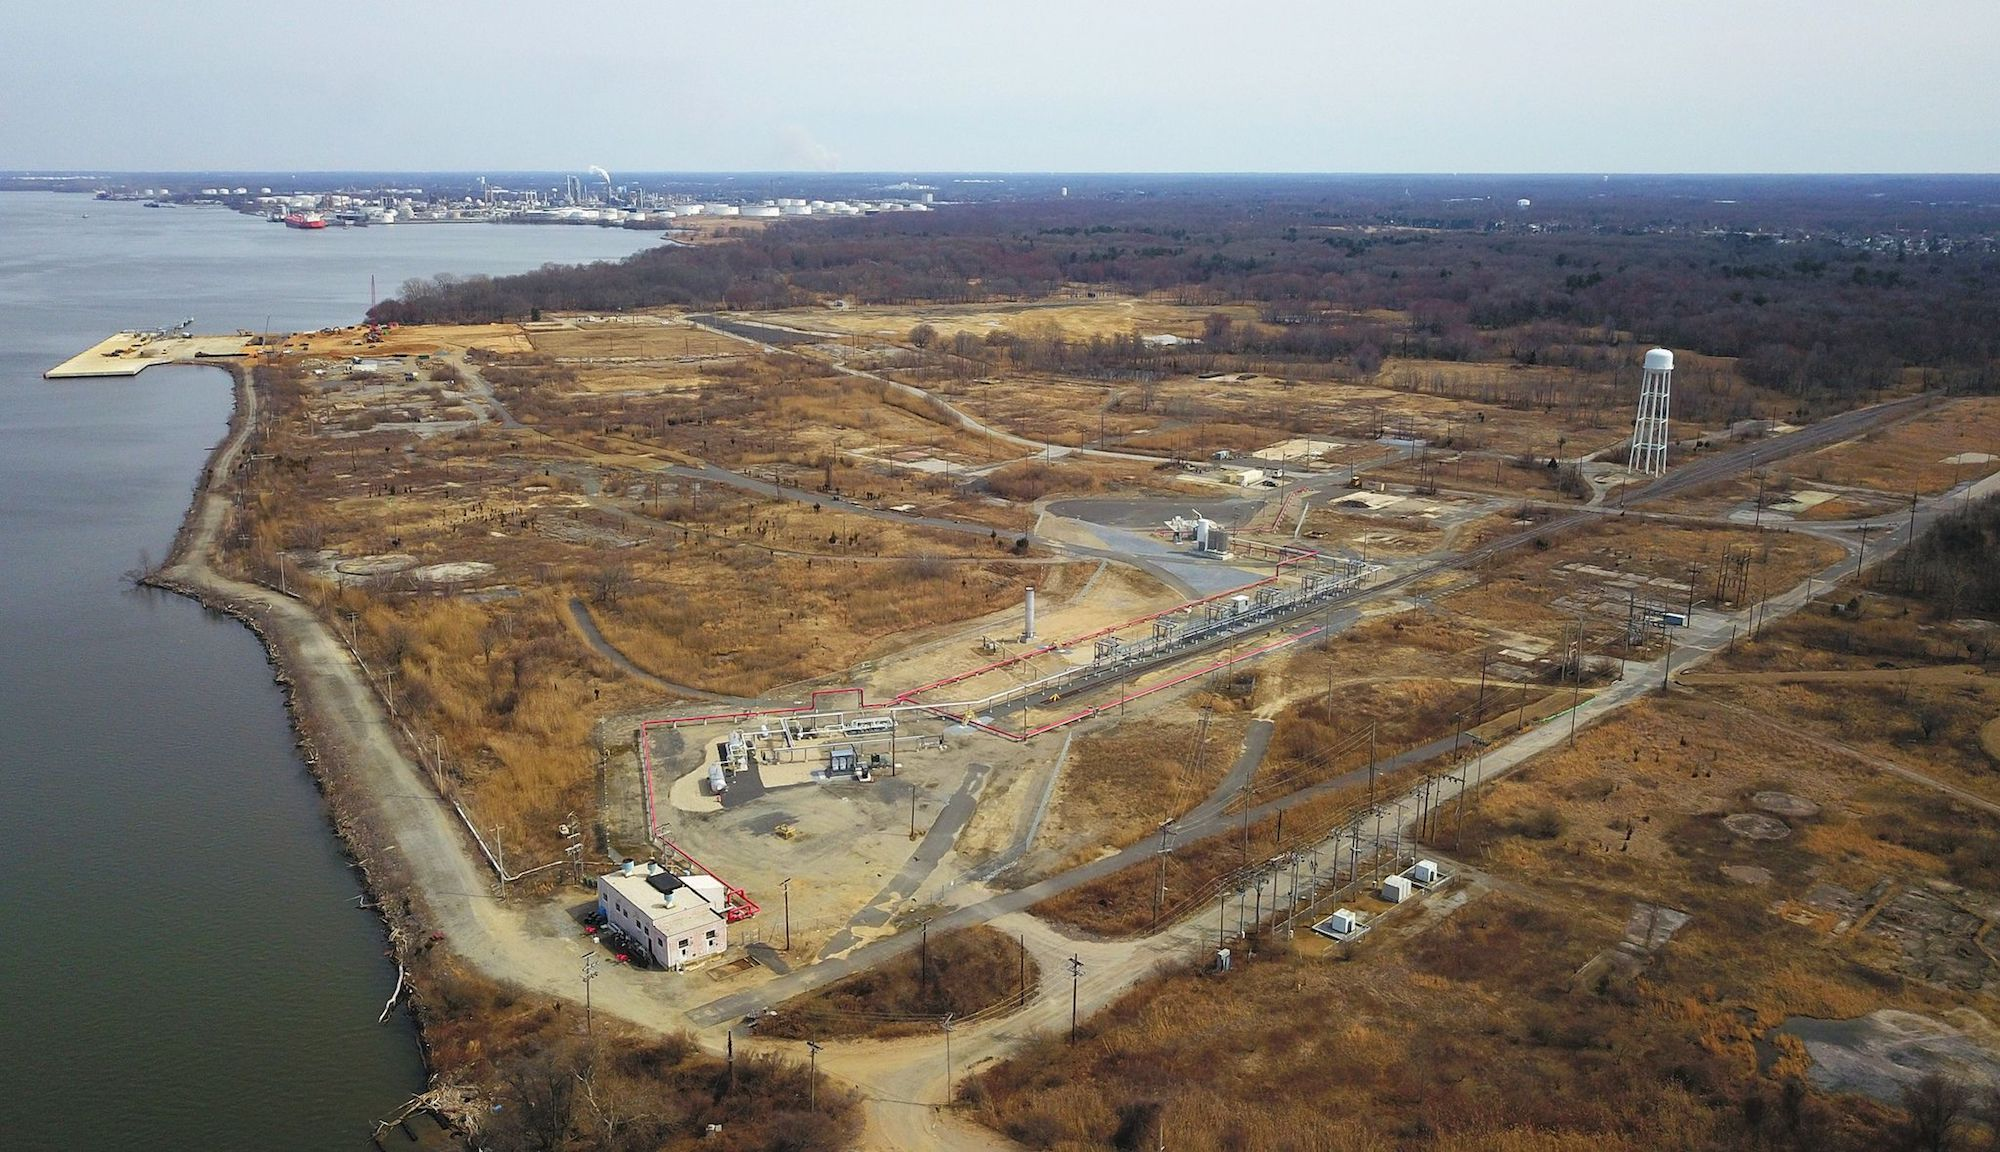 an aerial view of a mostly empty lot surrounded by brown landscape